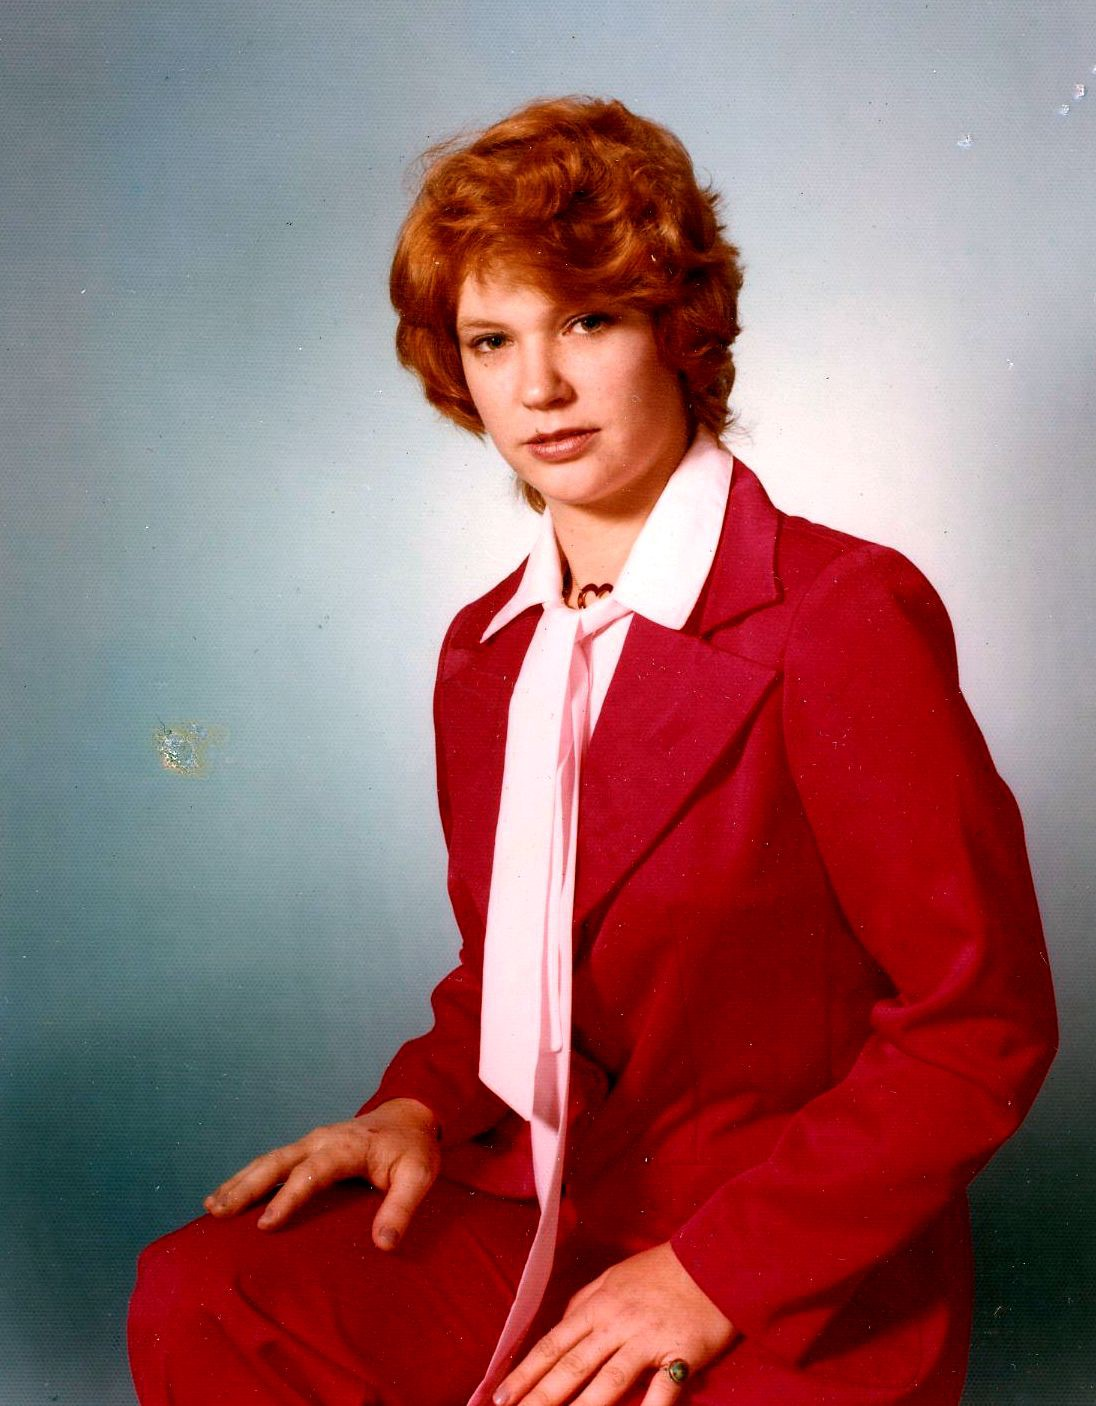 A young woman dressed in a red suit looks towards the camera.